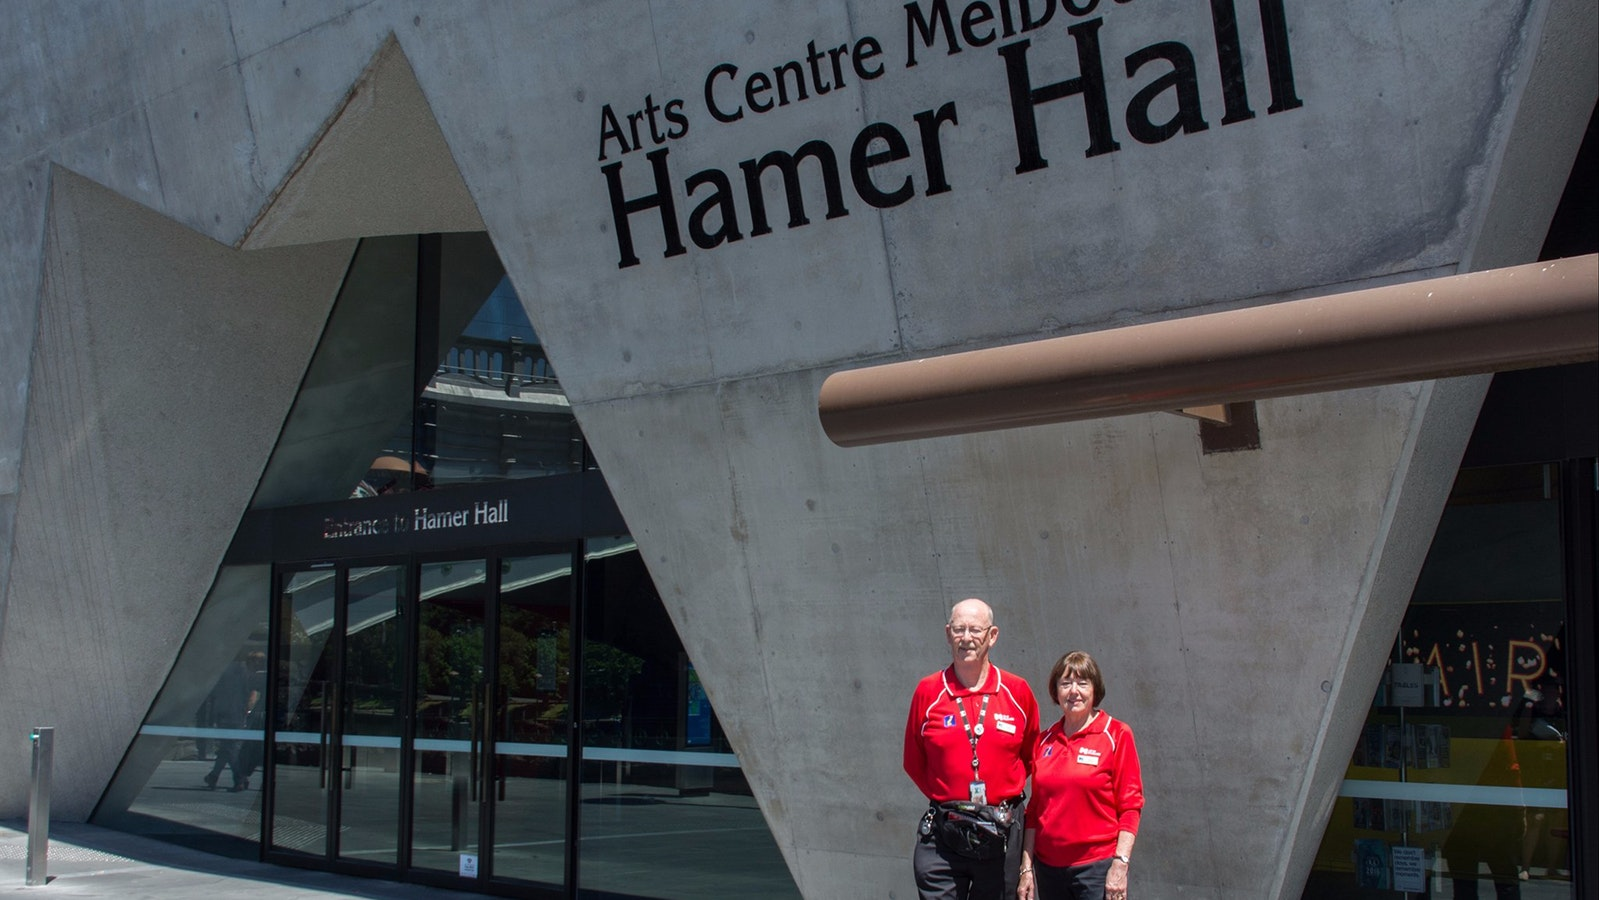 Two City of Melbourne volunteers wearing red shirts standing in front of entry to Hamer Hall